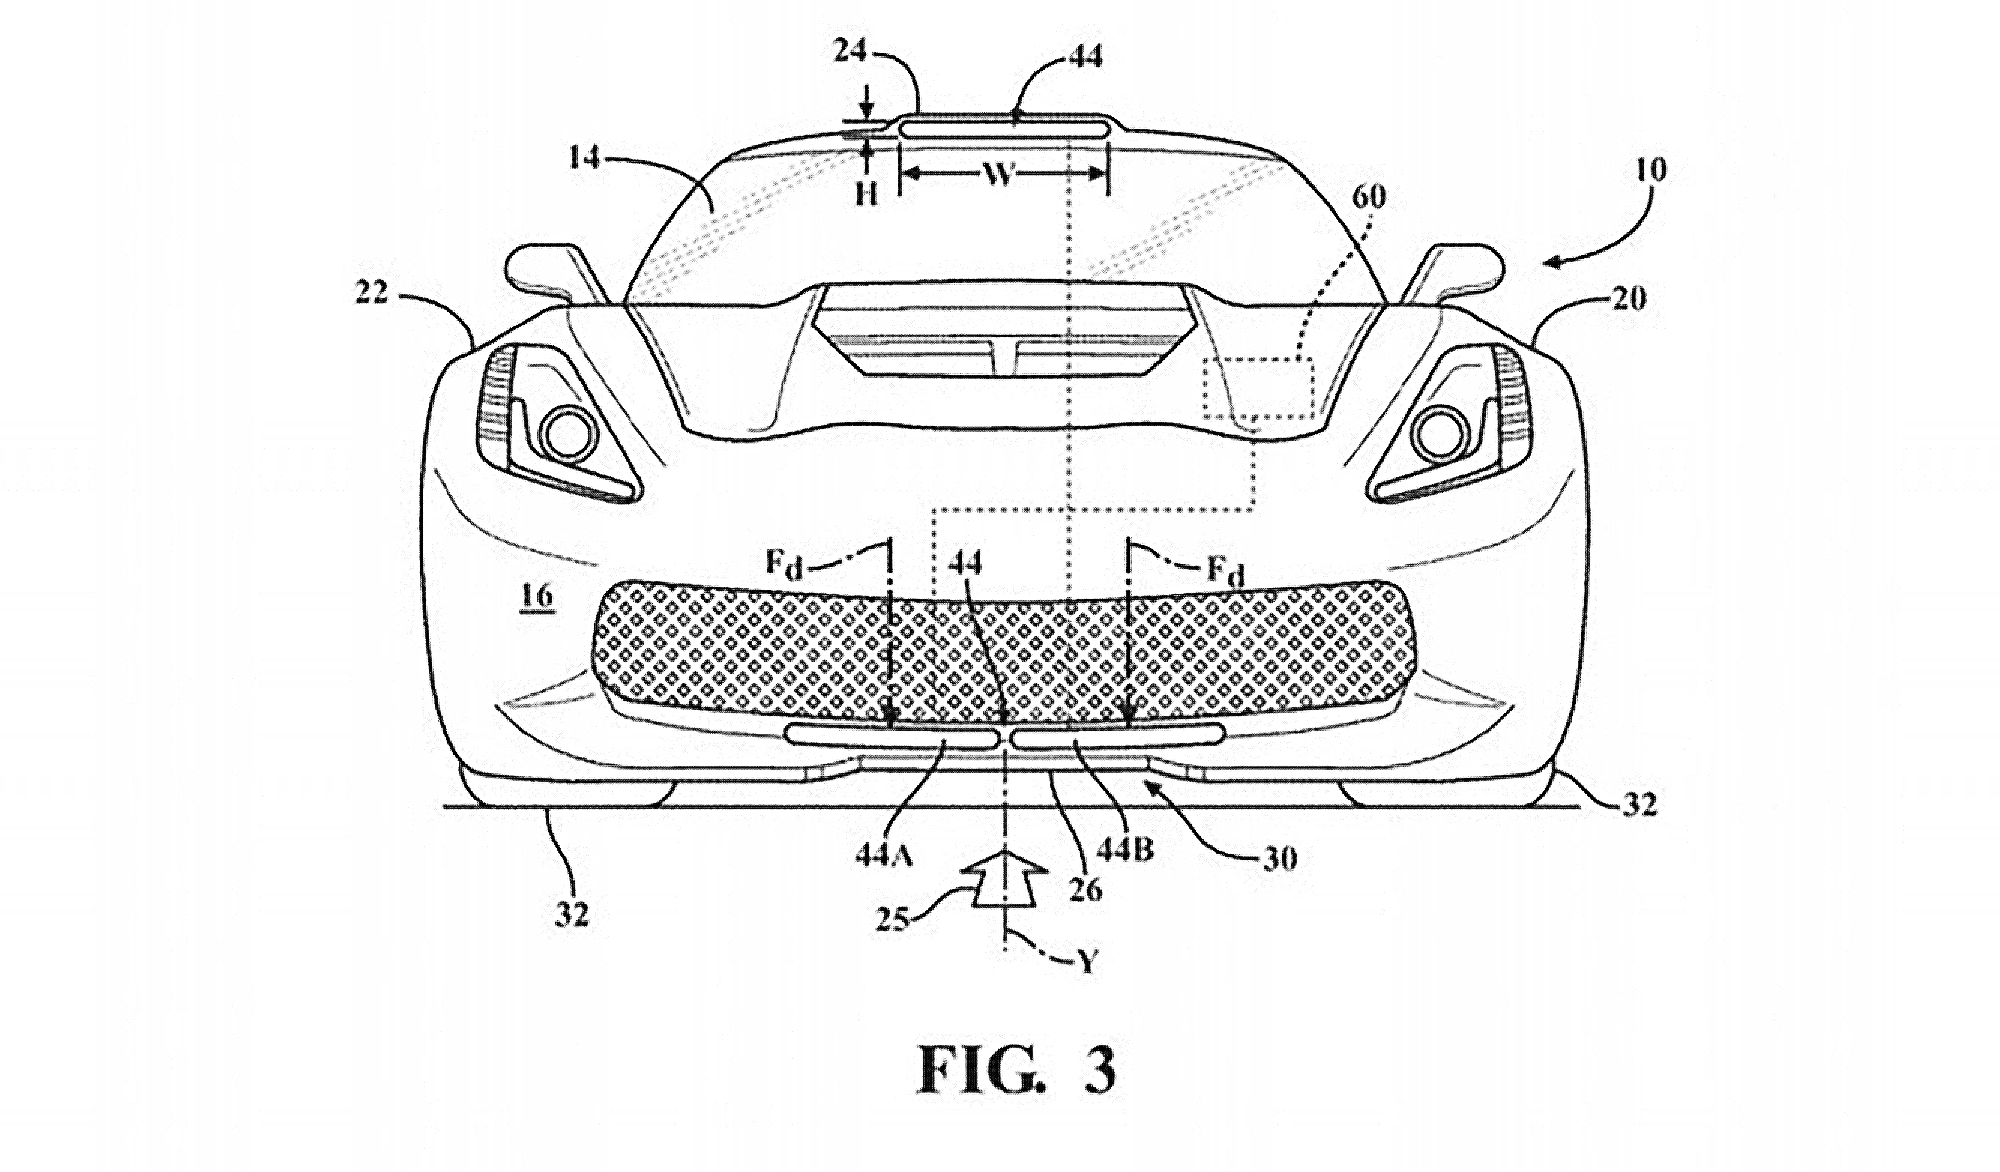 Gm Files Interesting New Aerodynamic Patents